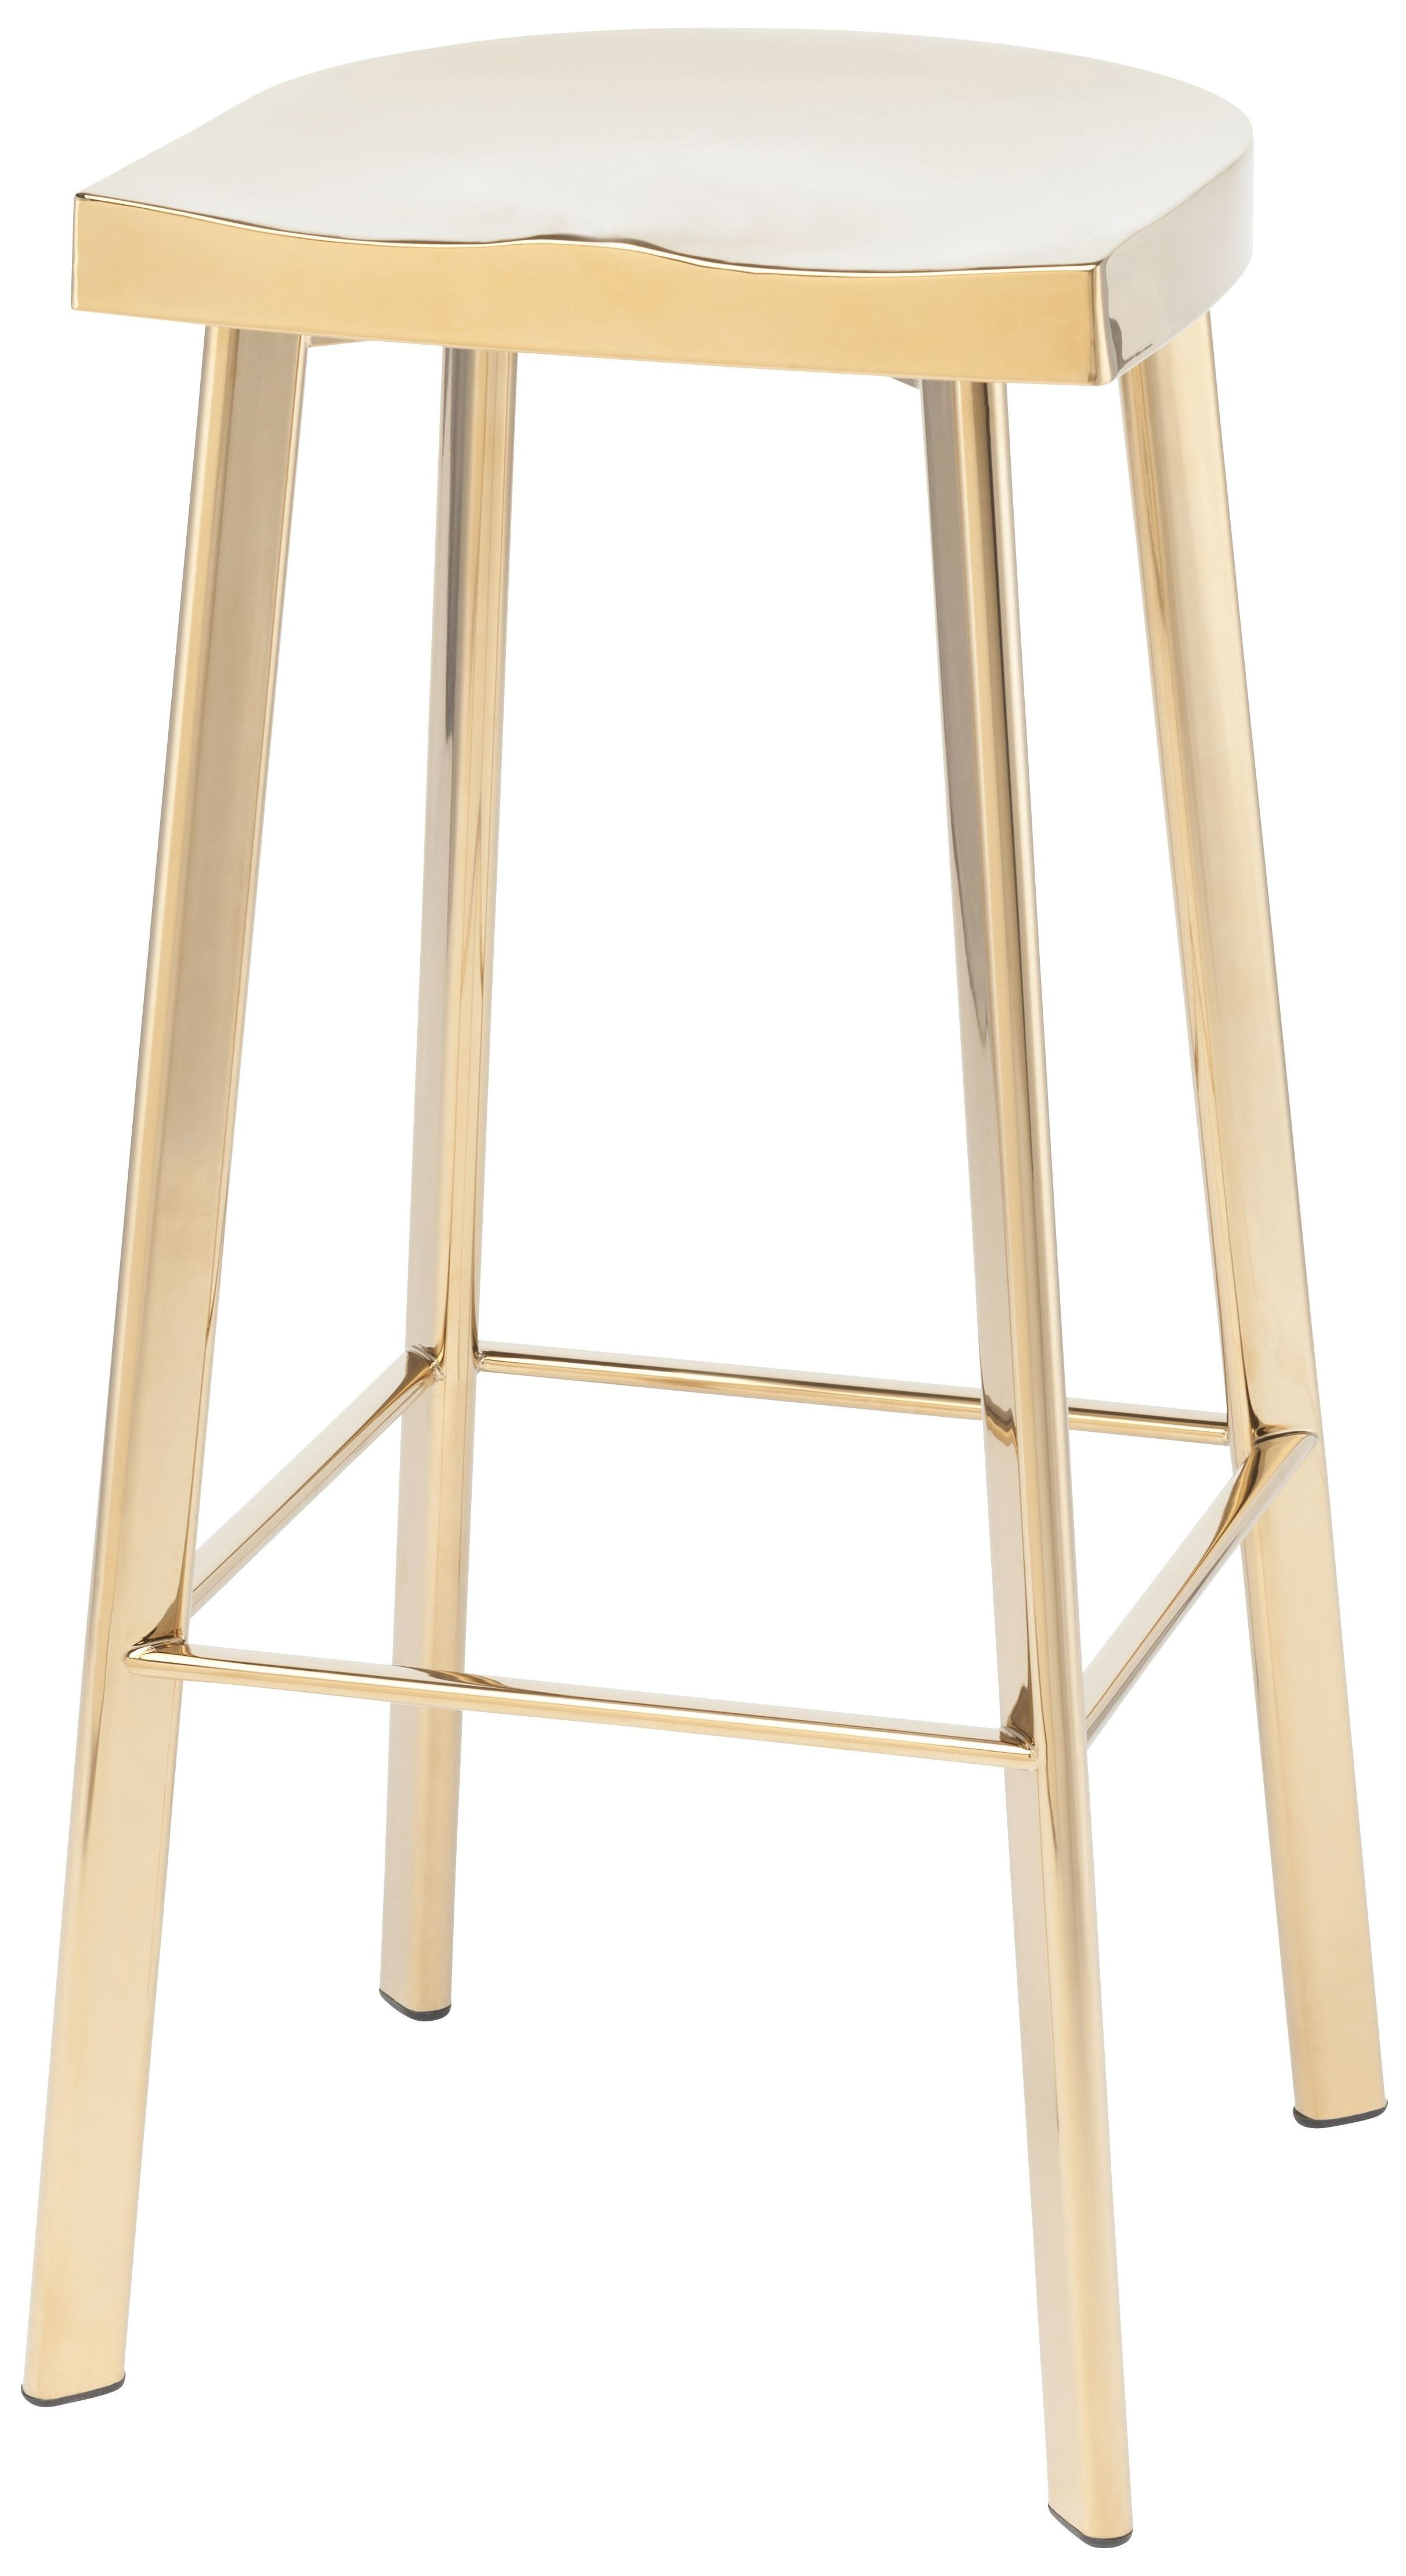 Icon Gold Metal Bar Stool from Nuevo Coleman Furniture : hgde233hr1 from colemanfurniture.com size 2423 x 4440 jpeg 437kB